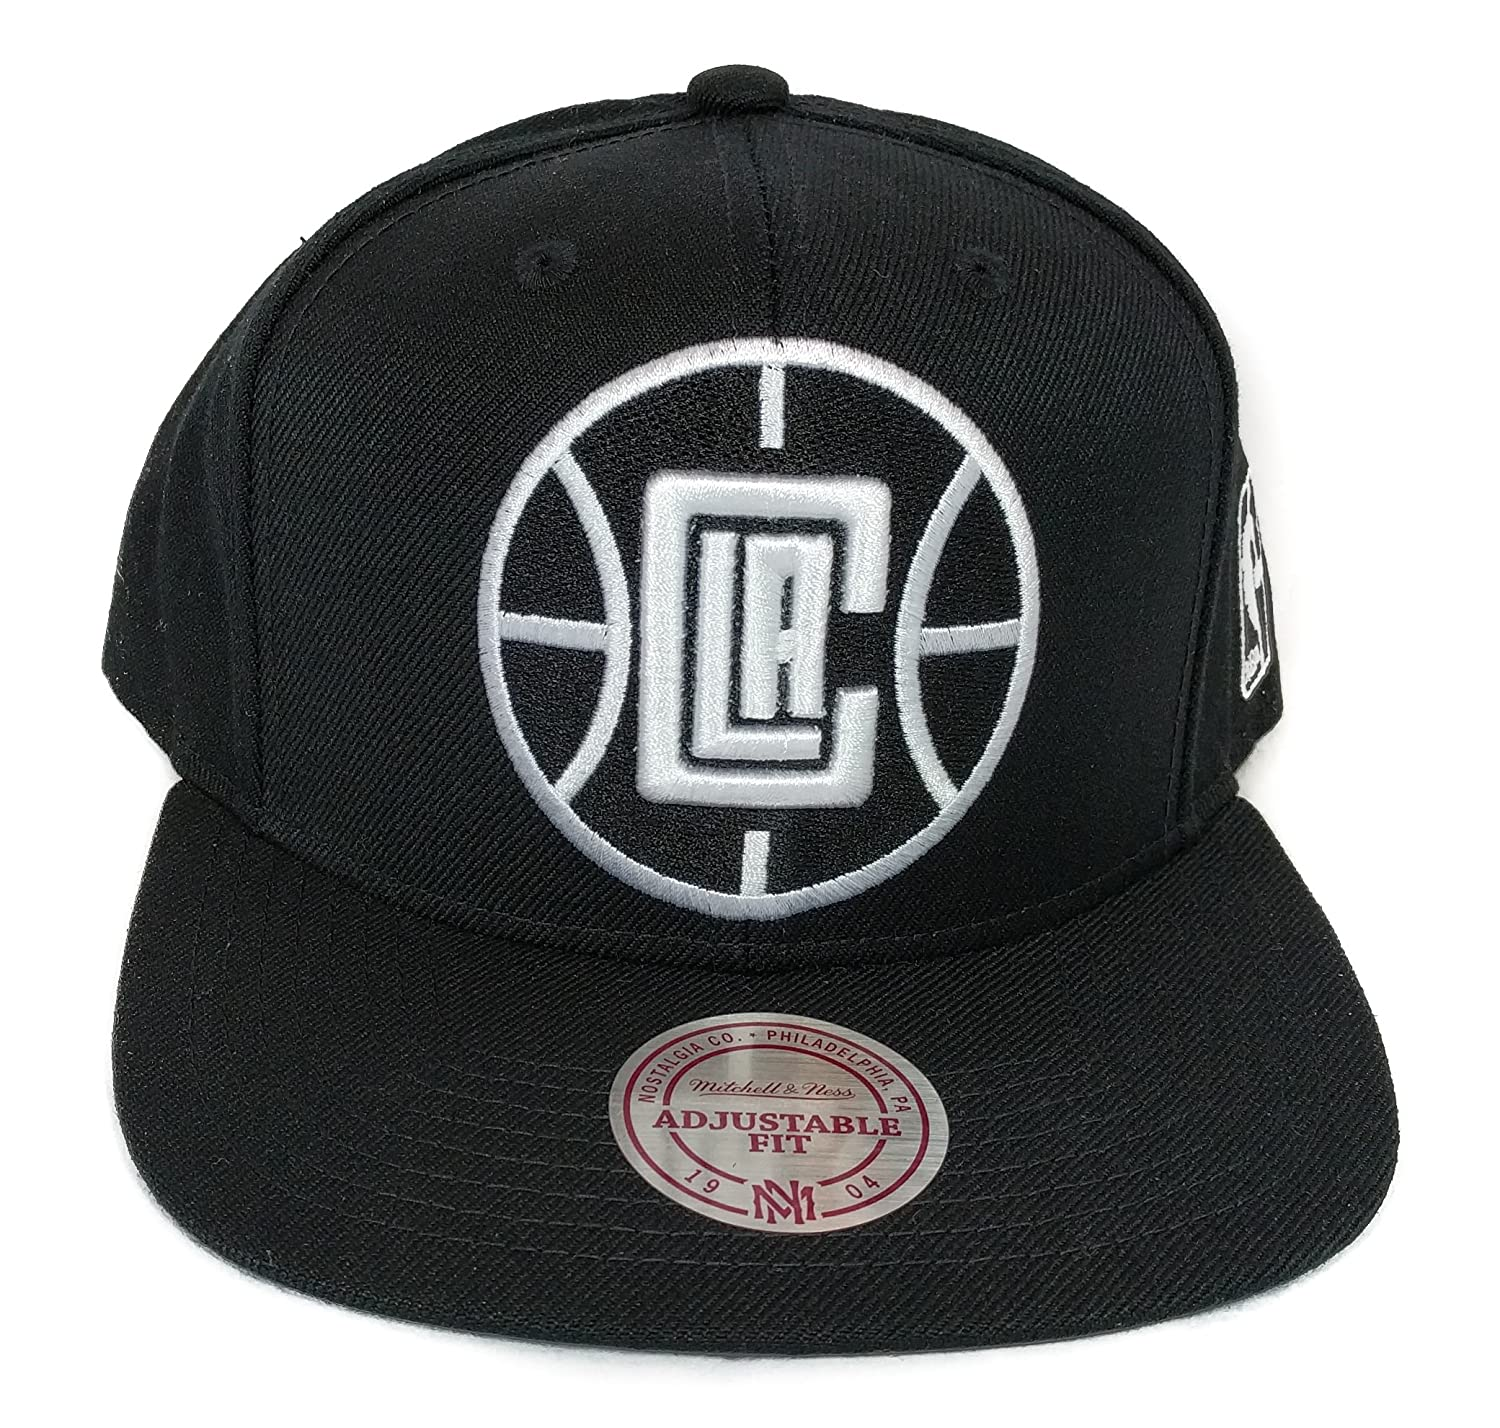 79b867997 Mitchell & Ness Los Angeles Clippers Black Classic HWC Vintage Solid Wool  Adjustable Snapback Hat NBA